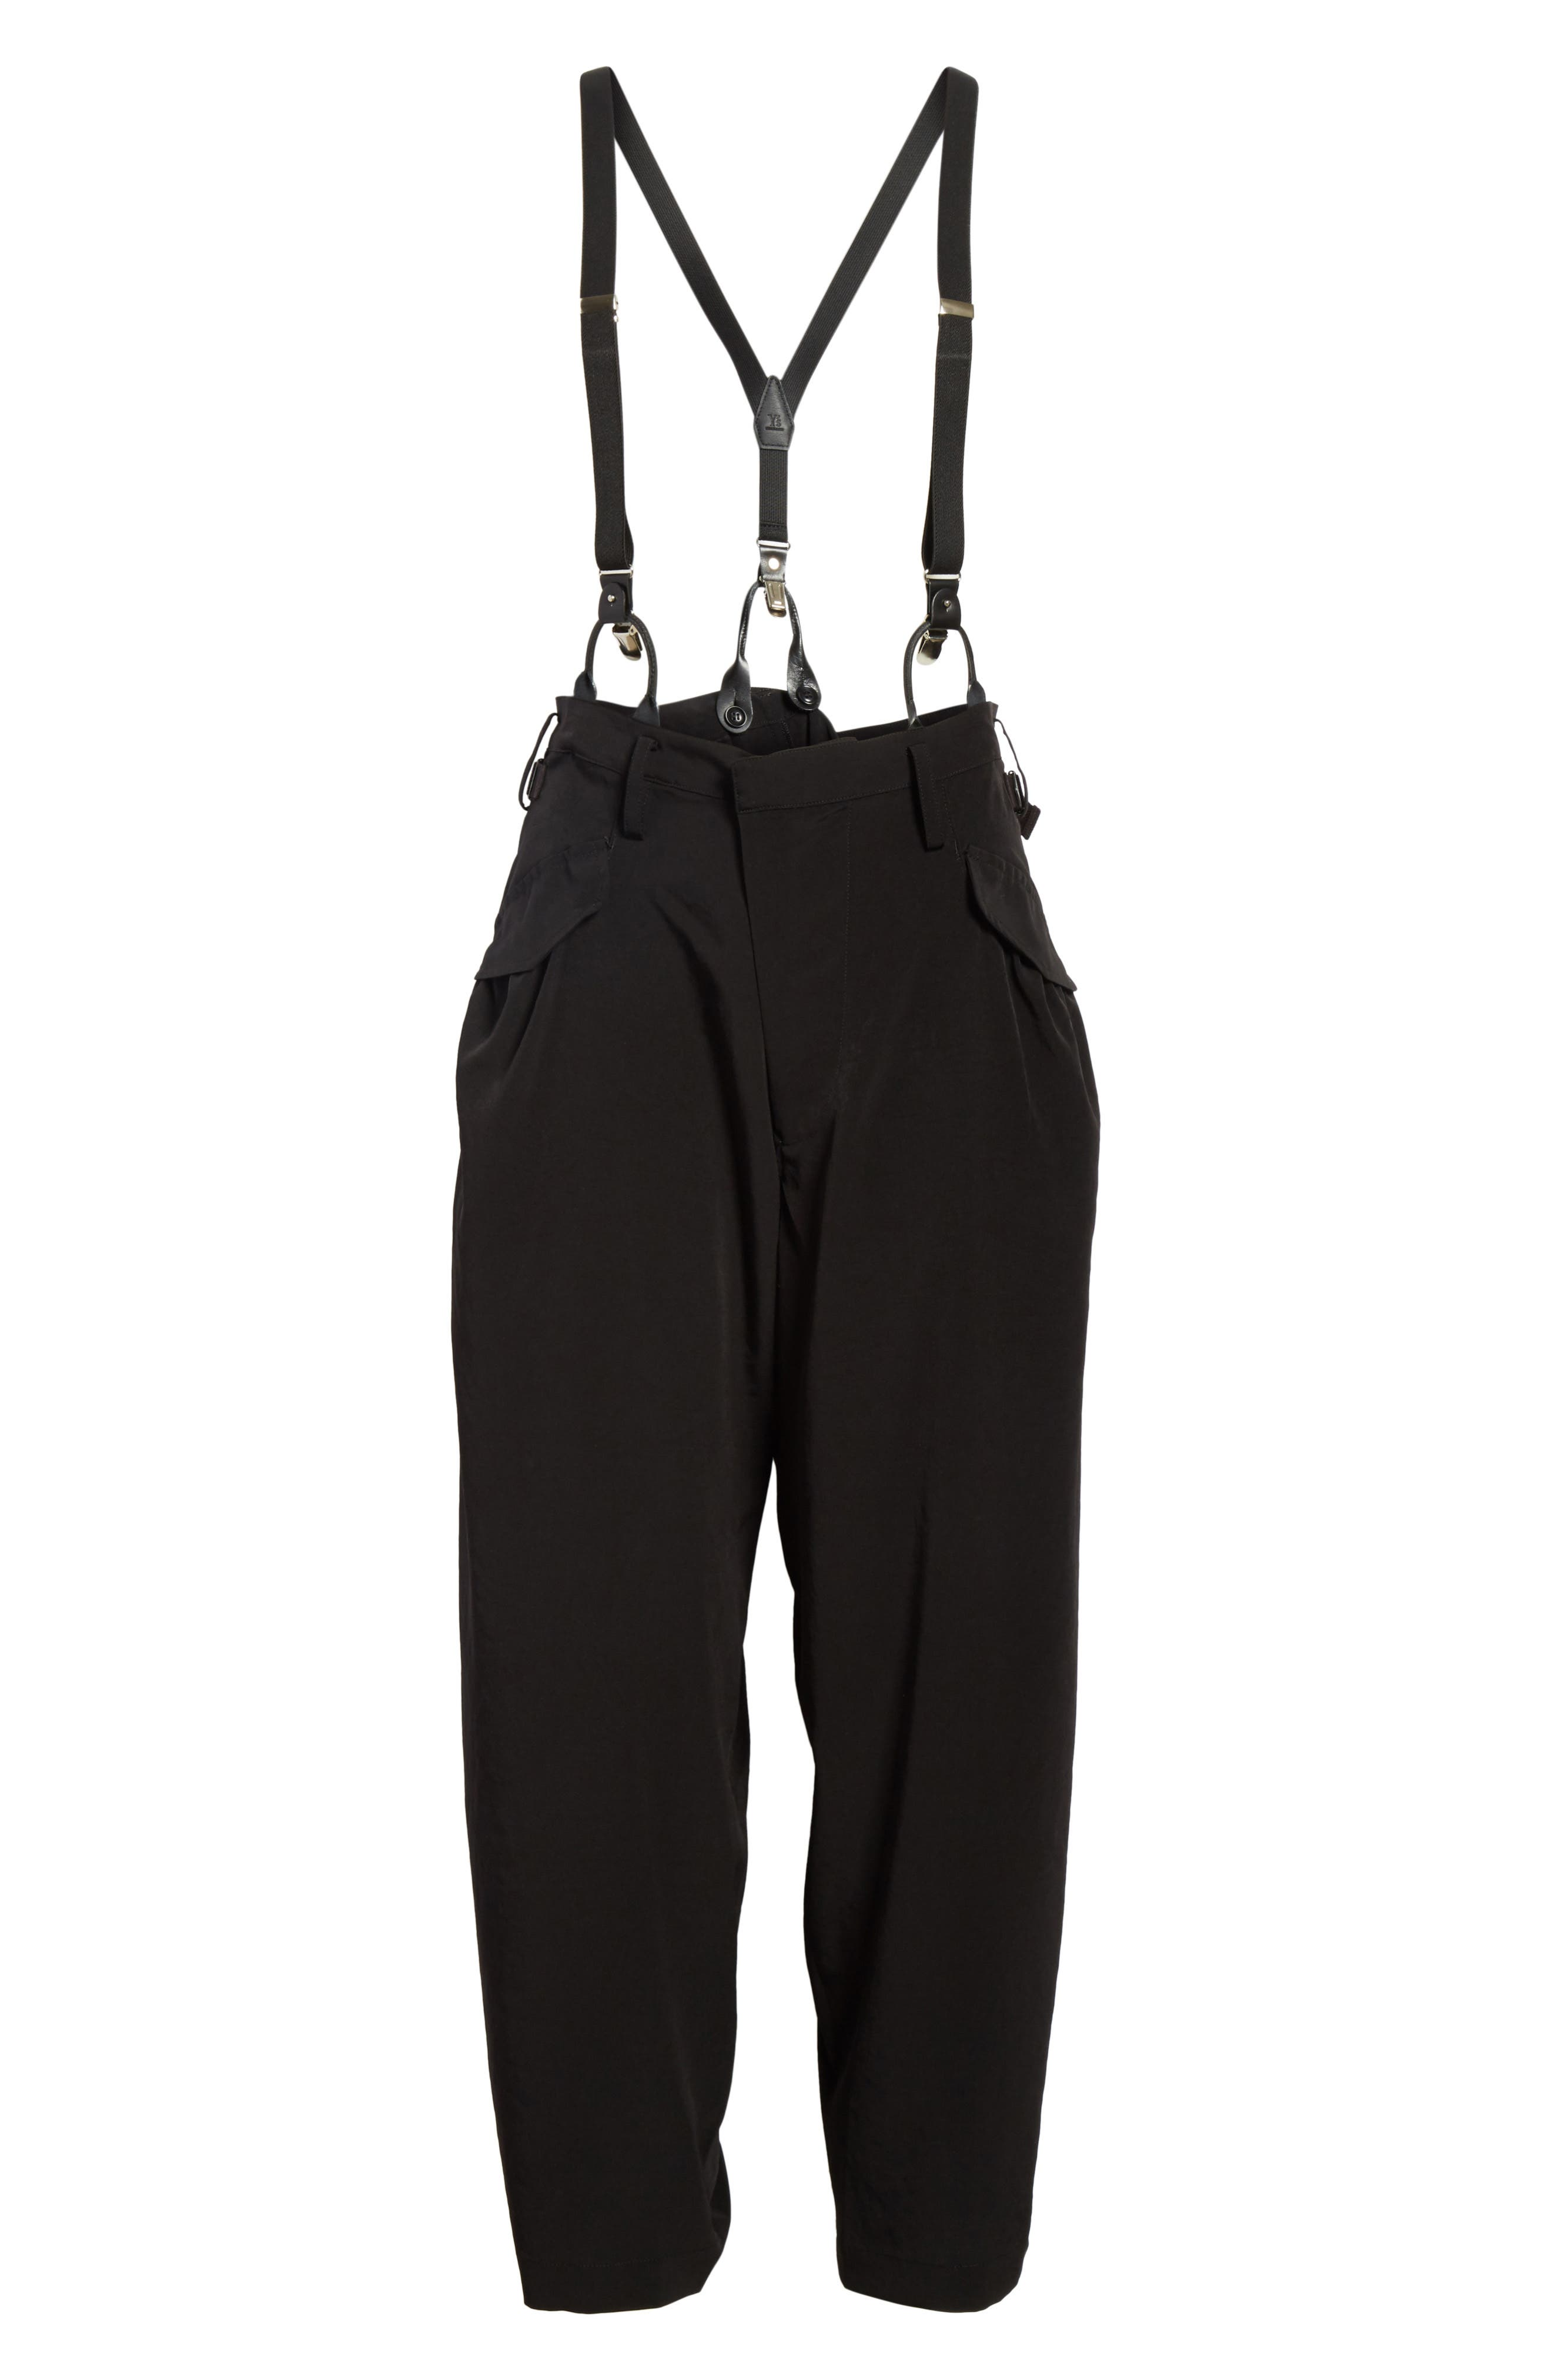 Pants with Suspenders,                             Alternate thumbnail 6, color,                             001